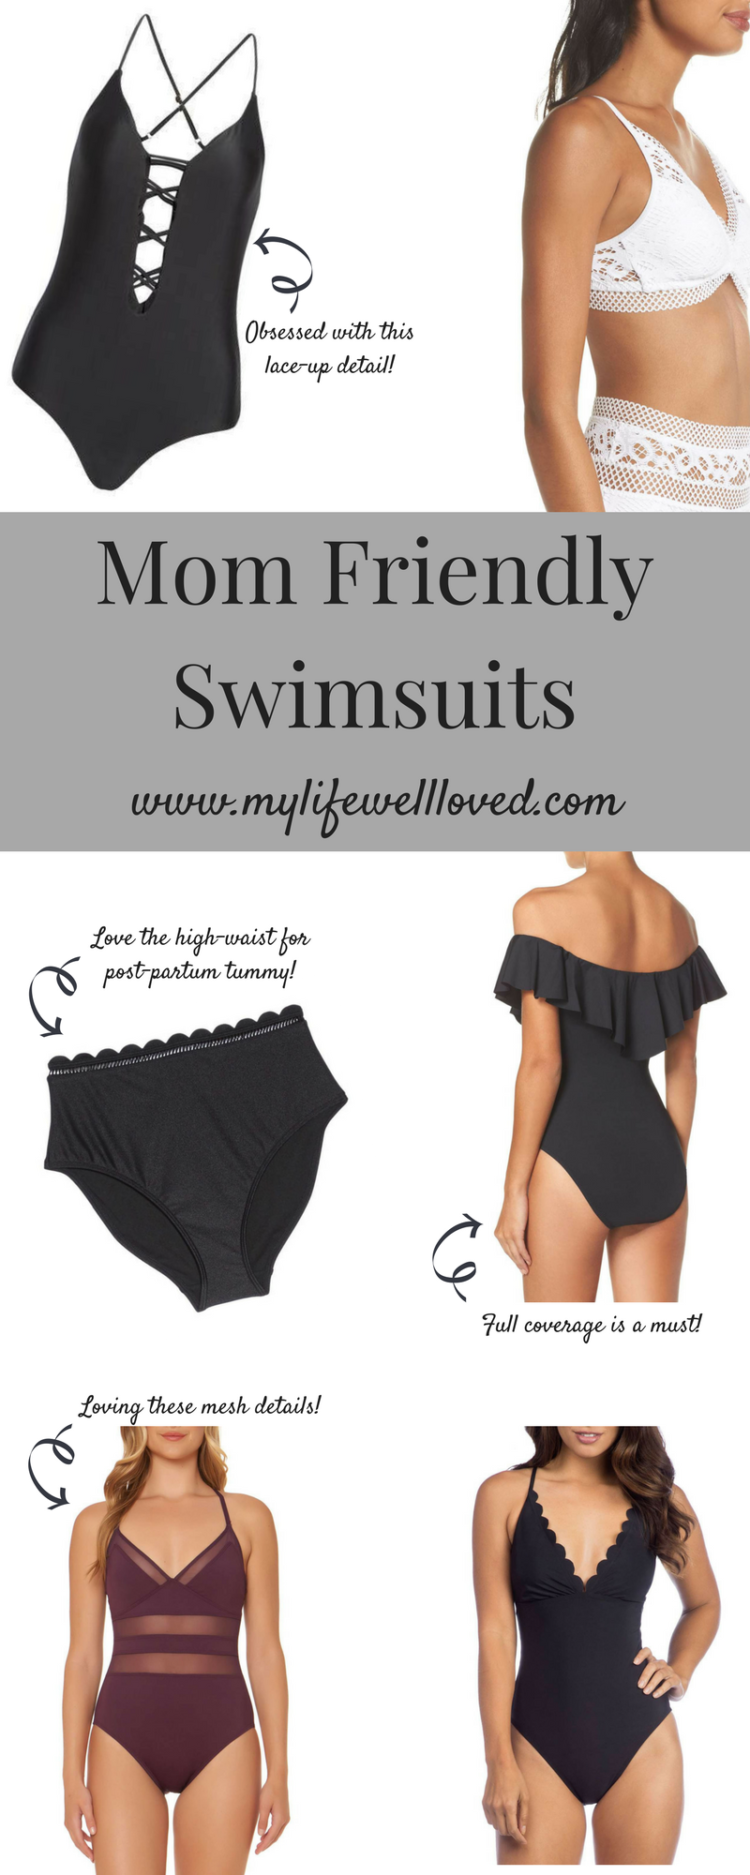 Best Mom Friendly Swimsuits with Alabama healthy lifestyle blogger Heather of MyLifewellloved.com // #summer #swimsuits #fashion #momlife #pregnancy